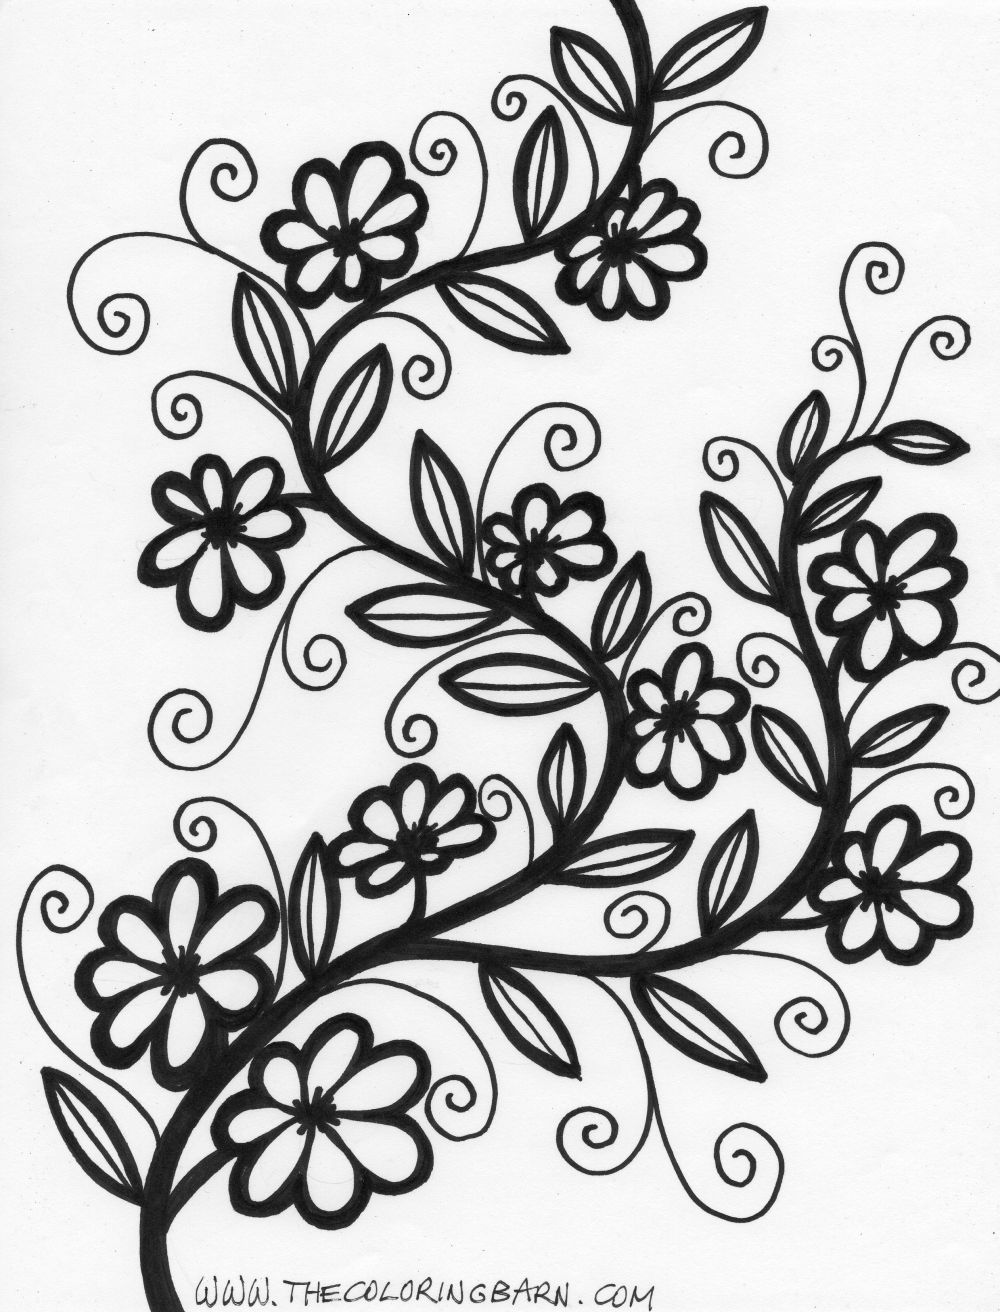 flower patterns to color top 20 free printable pattern coloring pages online patterns flower to color